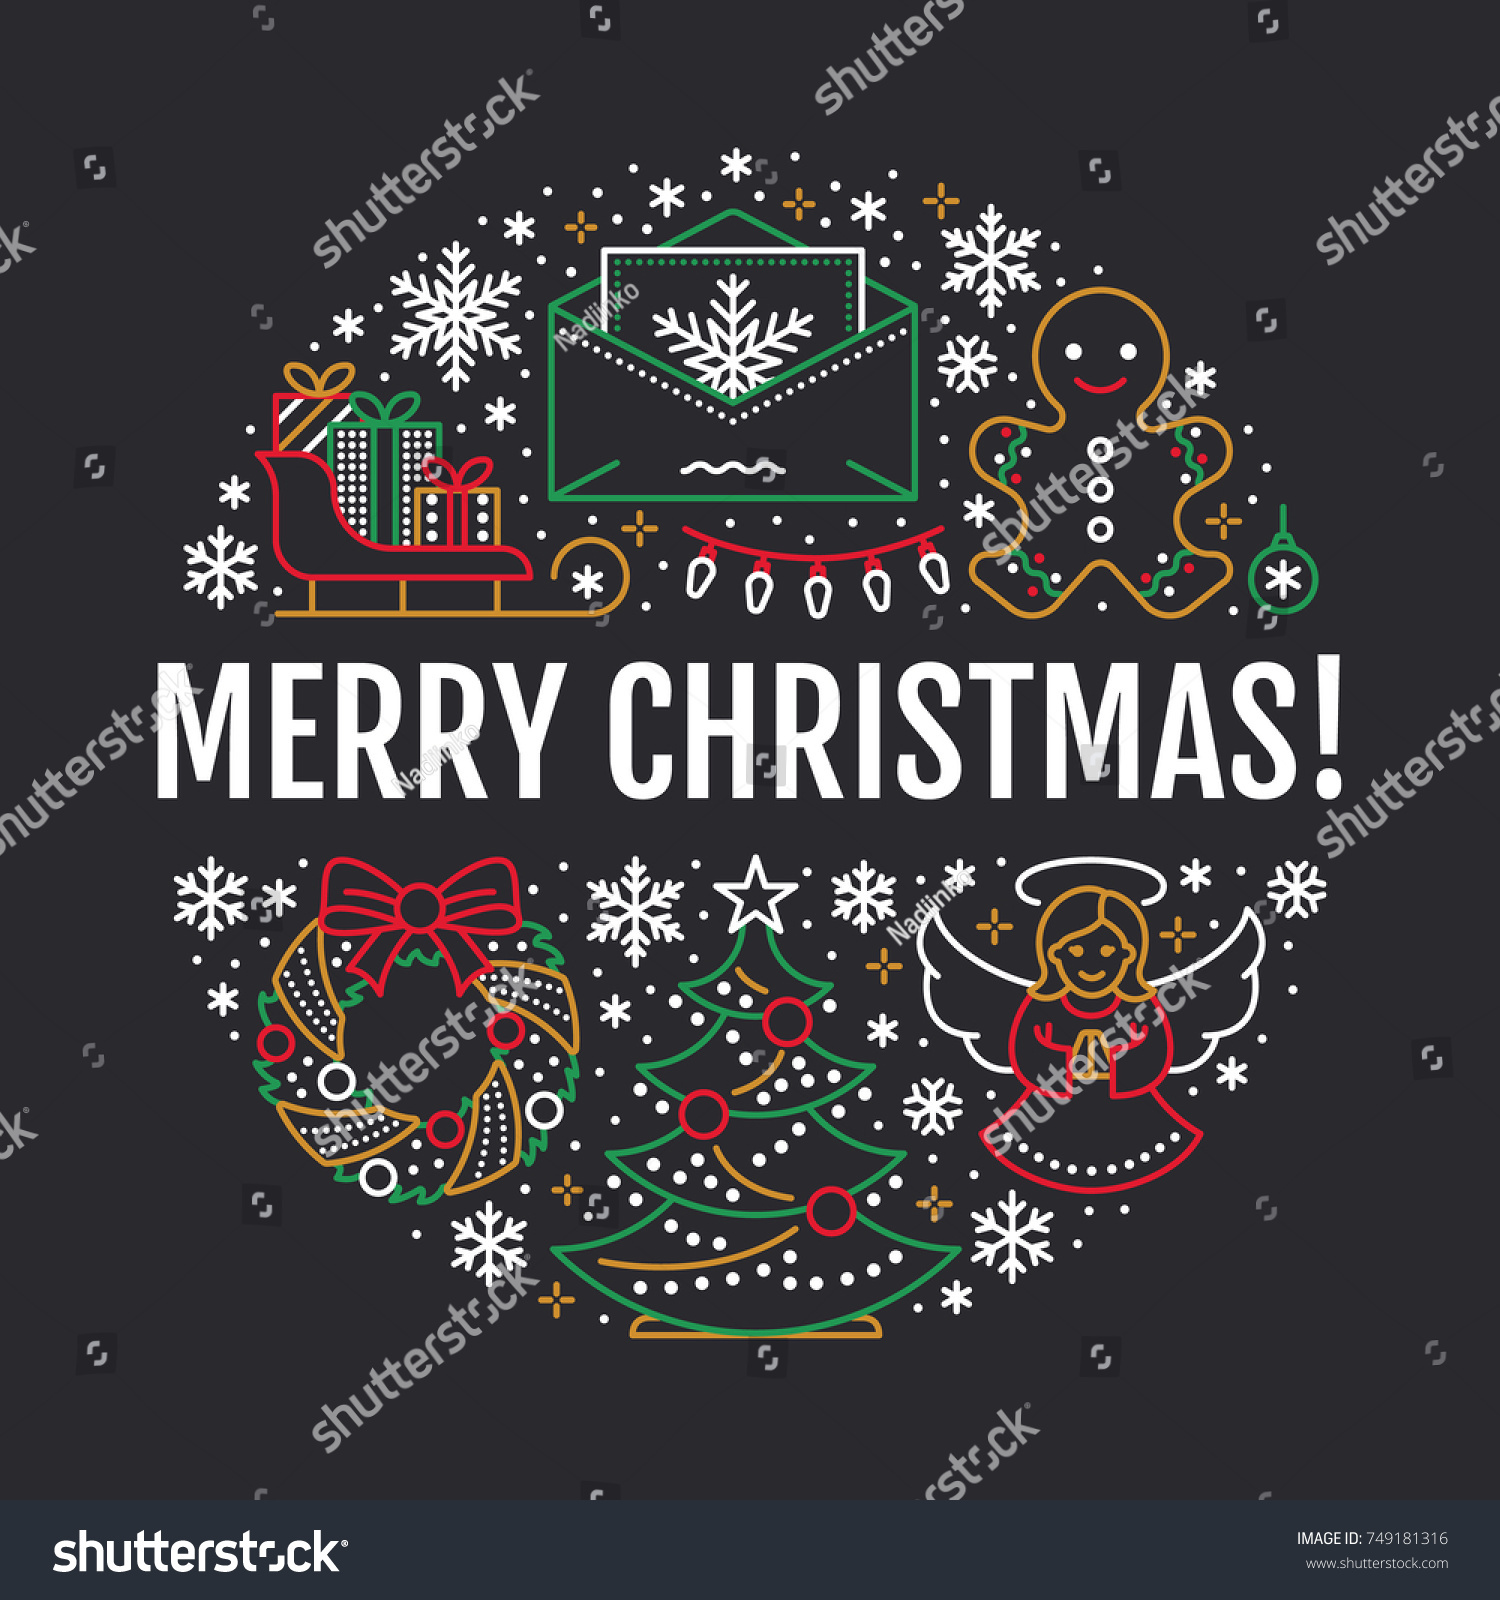 Christmas New Year Banner Illustration Vector Stock Vector HD ...